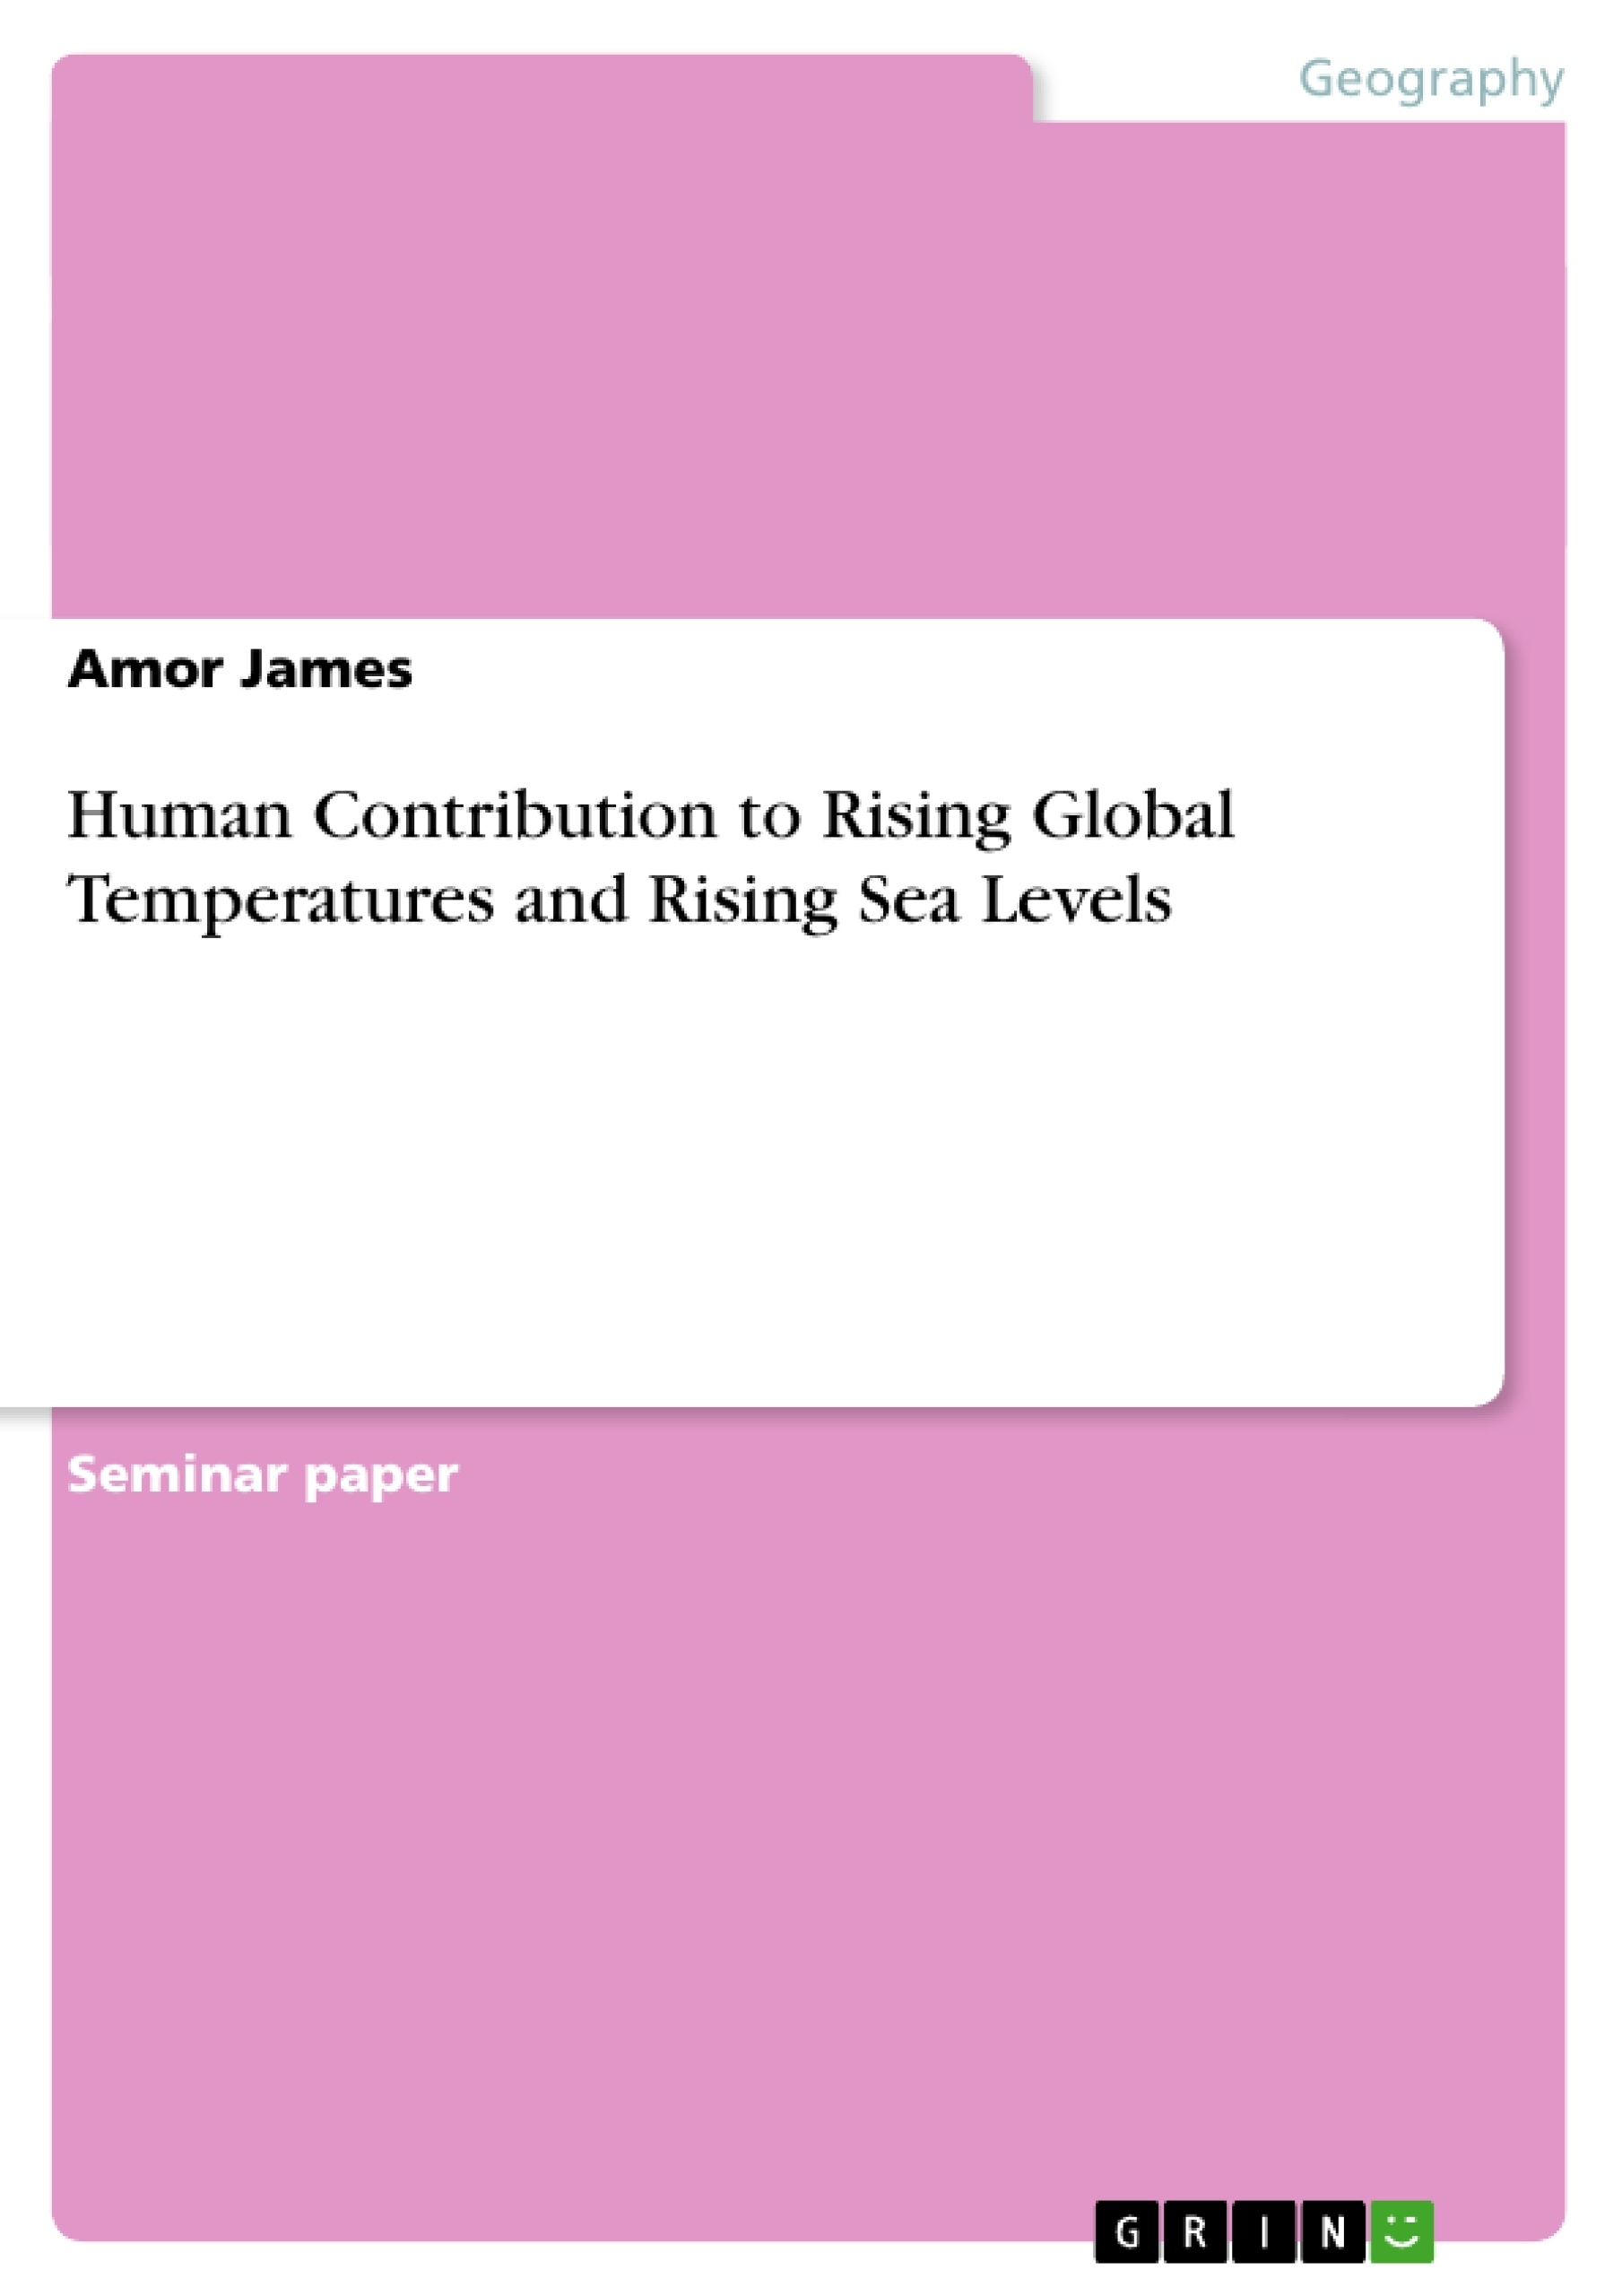 Title: Human Contribution to Rising Global Temperatures and Rising Sea Levels